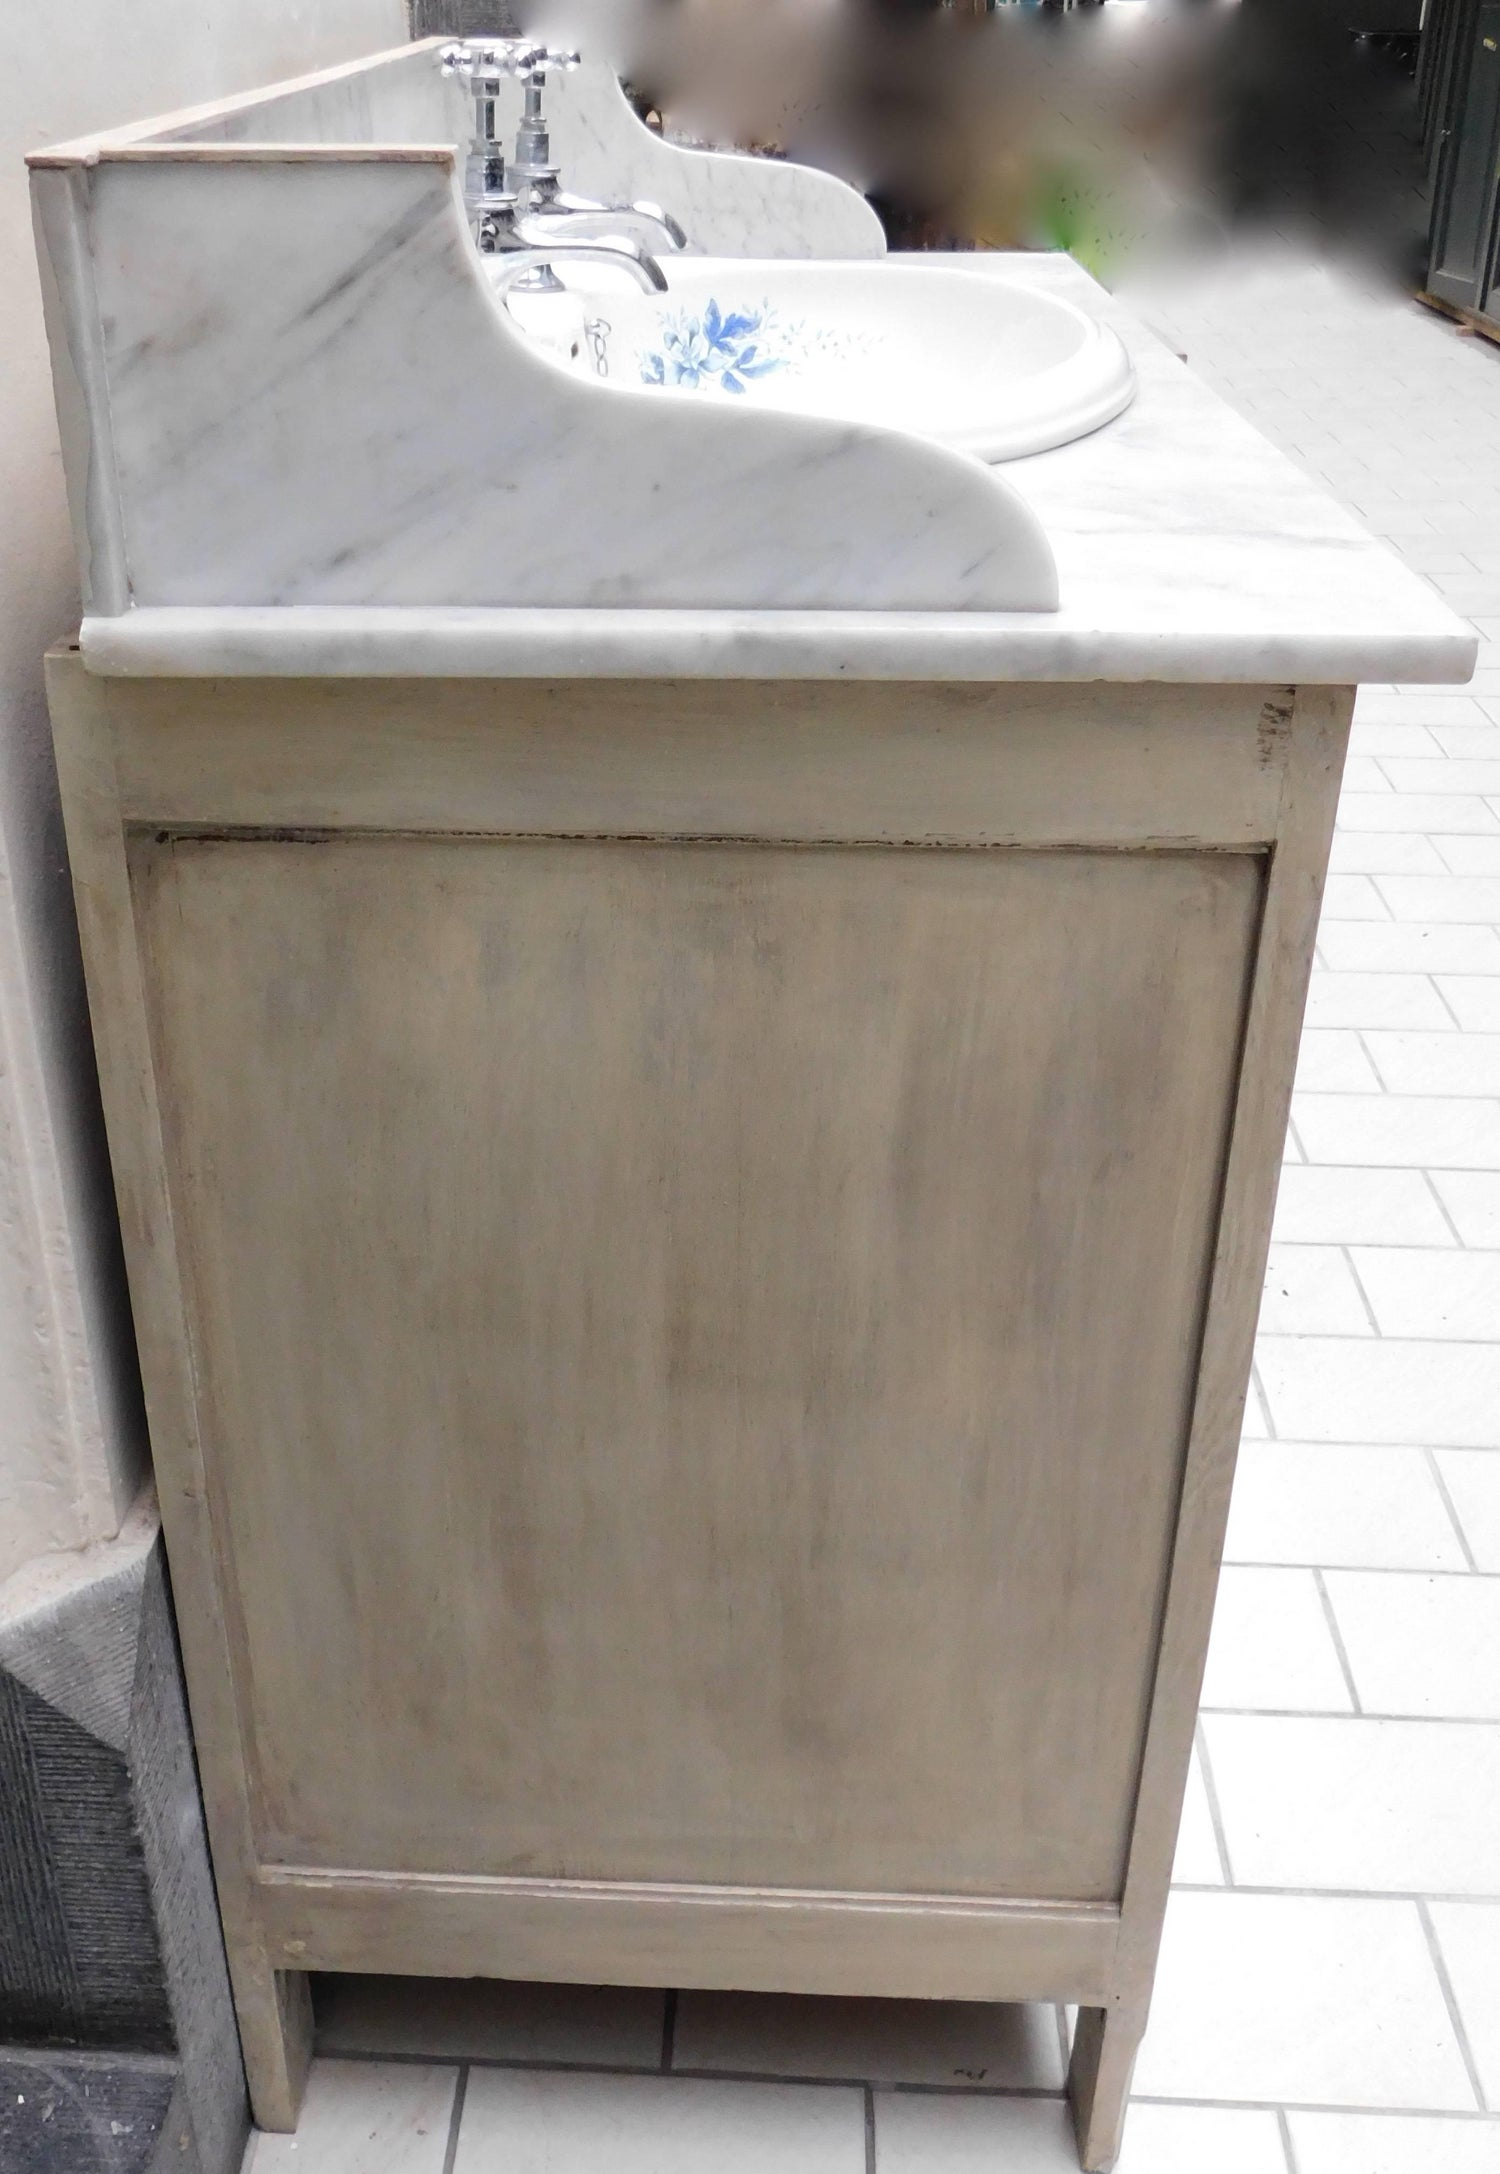 Antique Marble Top Sink Vanity With Mirror And Blue And